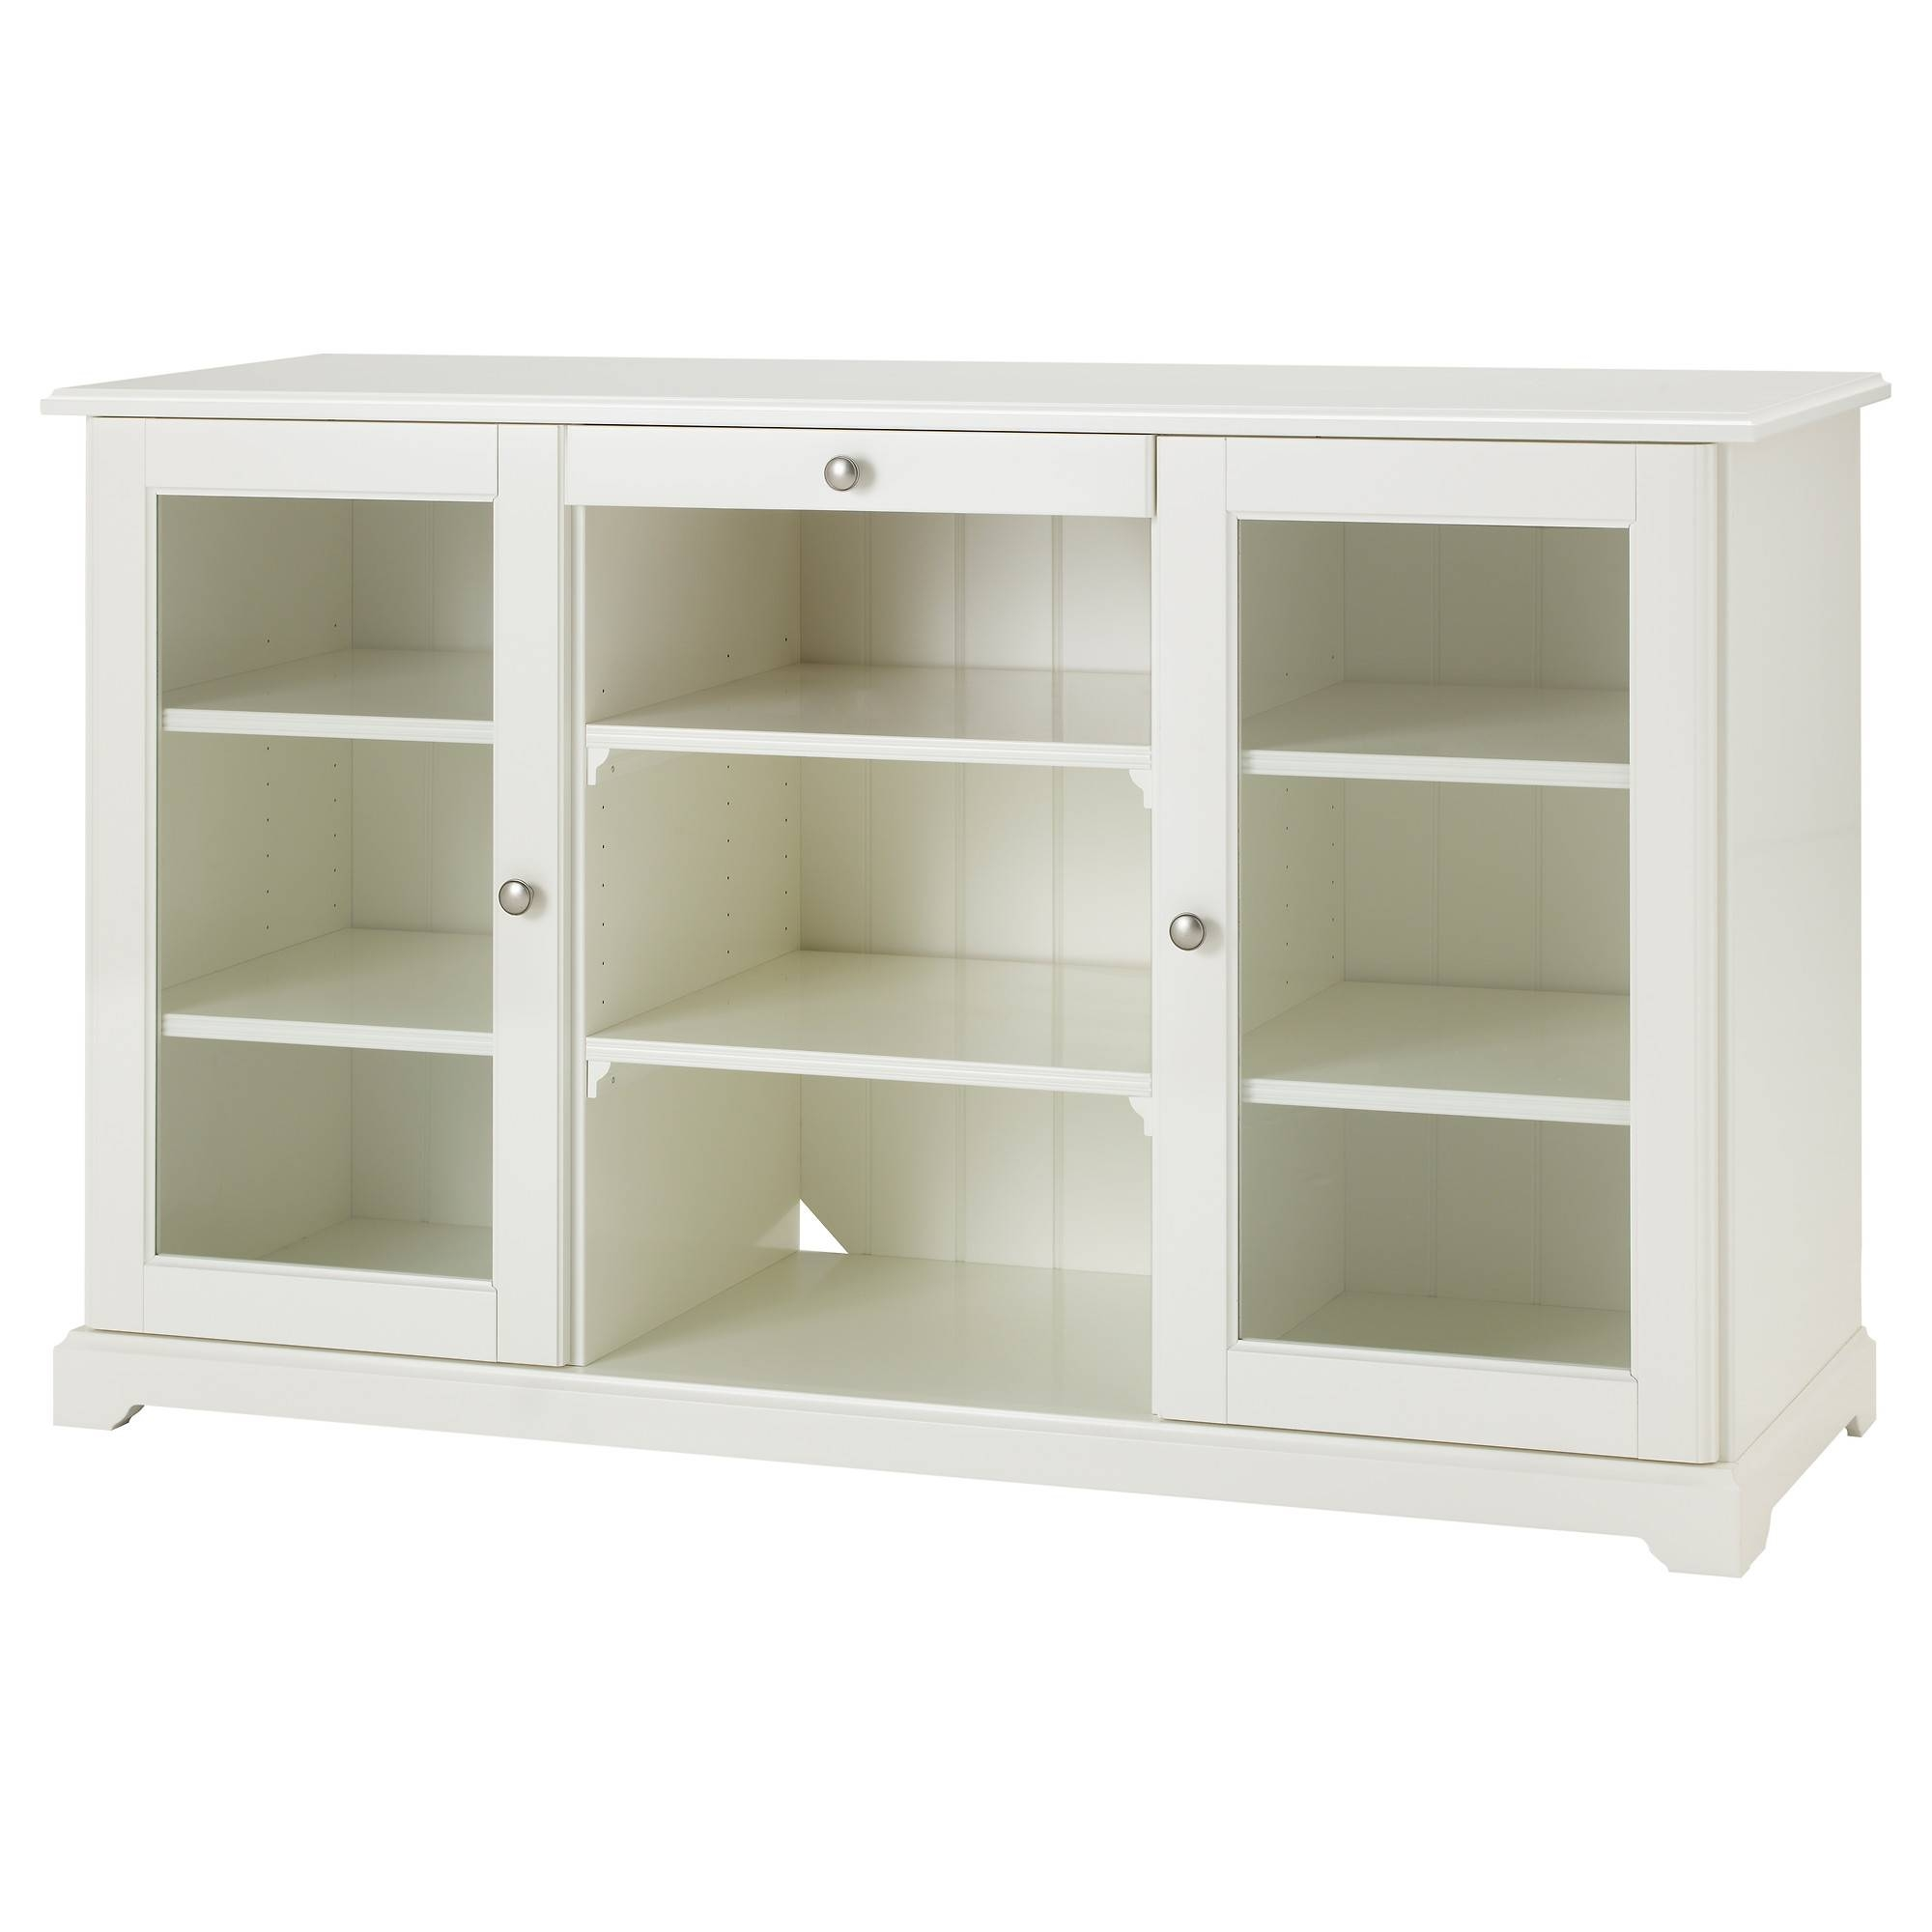 Liatorp Sideboard - White - Ikea intended for White Wood Sideboards (Image 11 of 30)